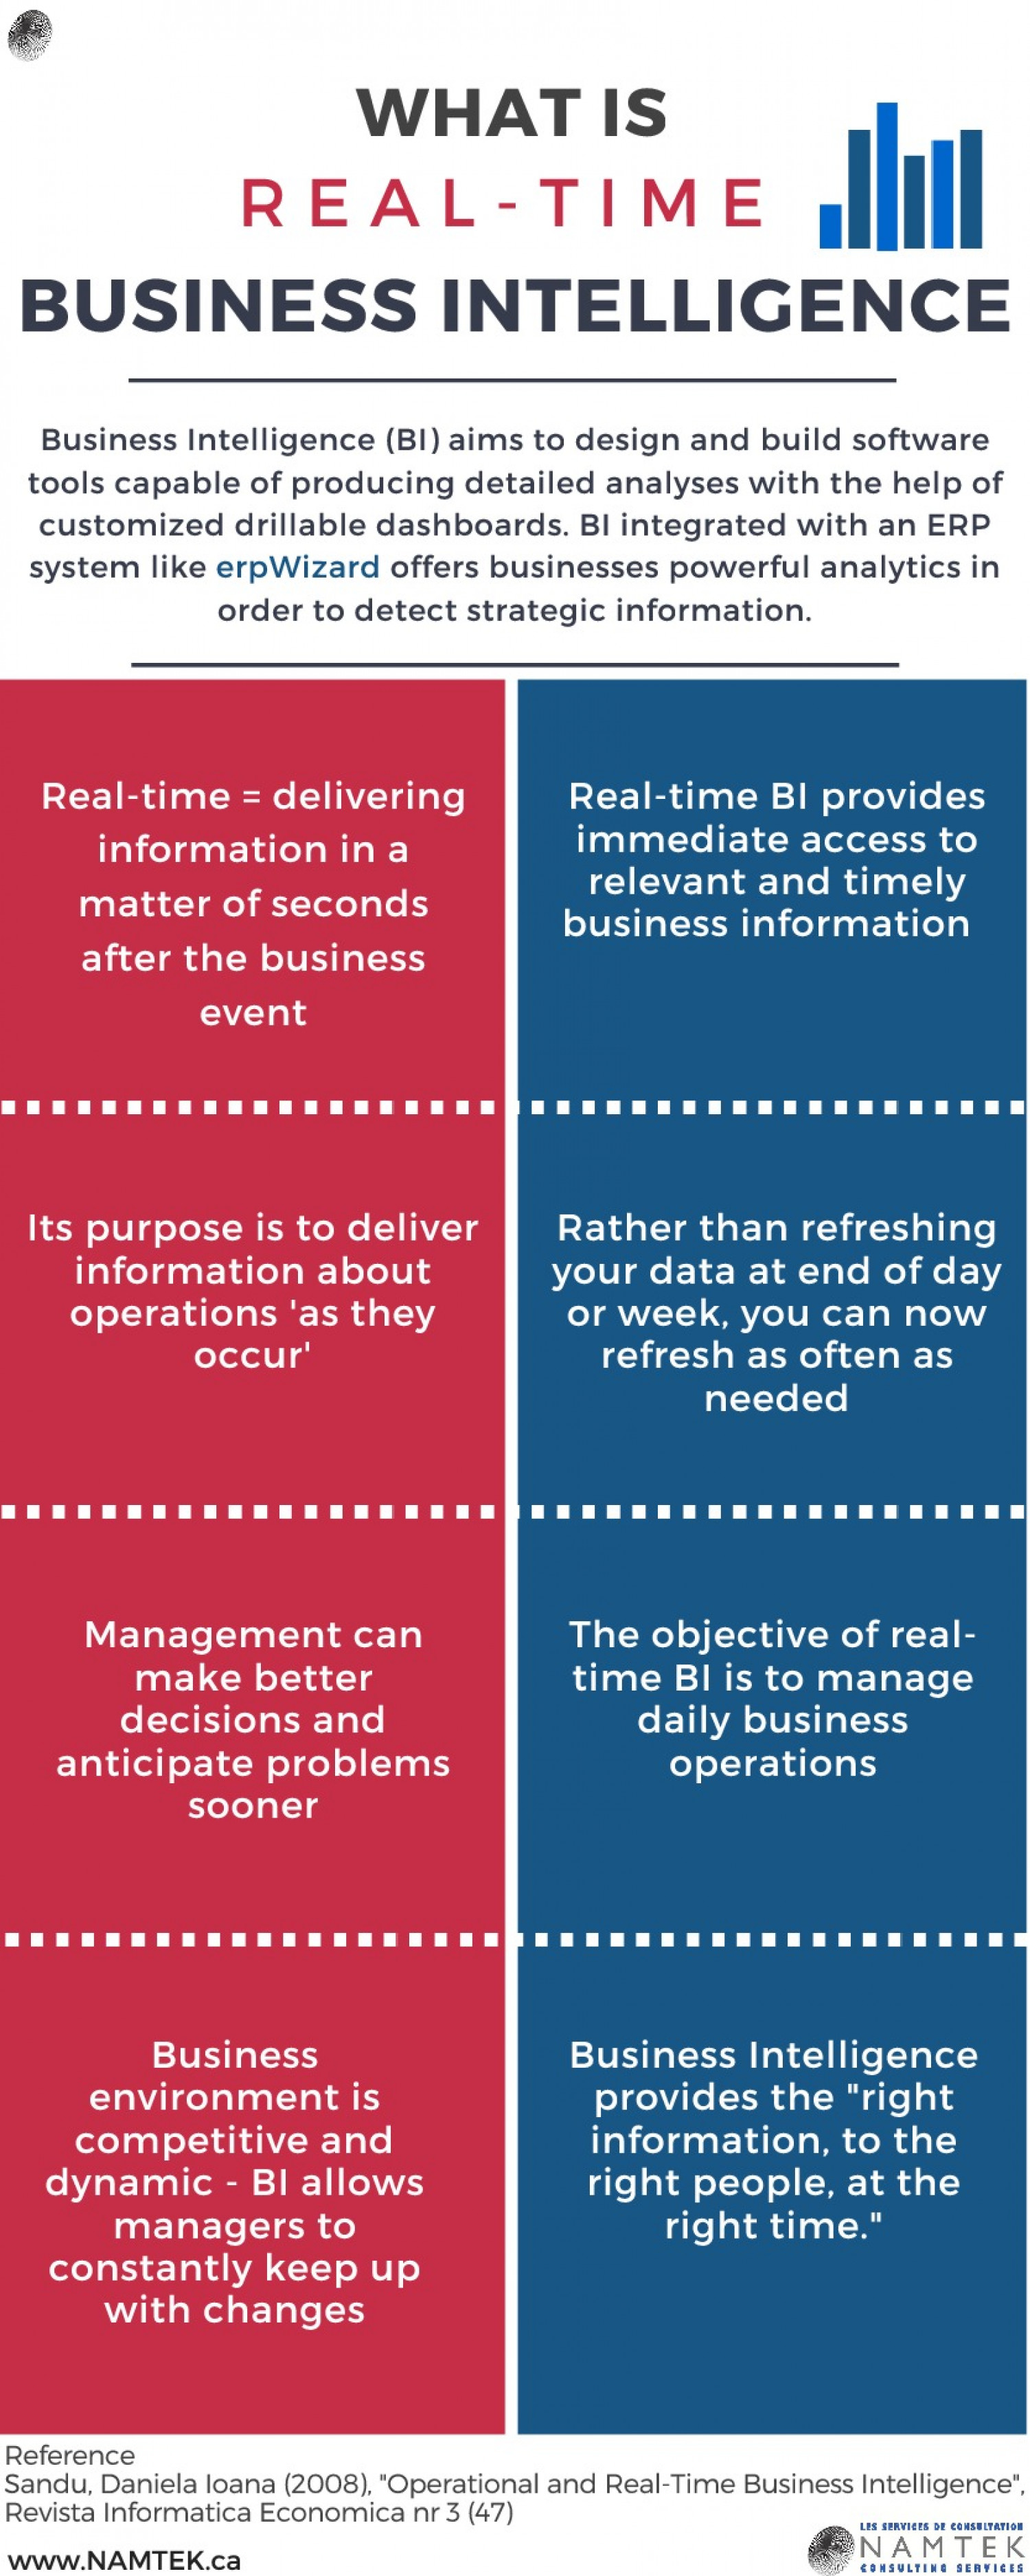 Real-Time Business Intelligence: What is it? Infographic